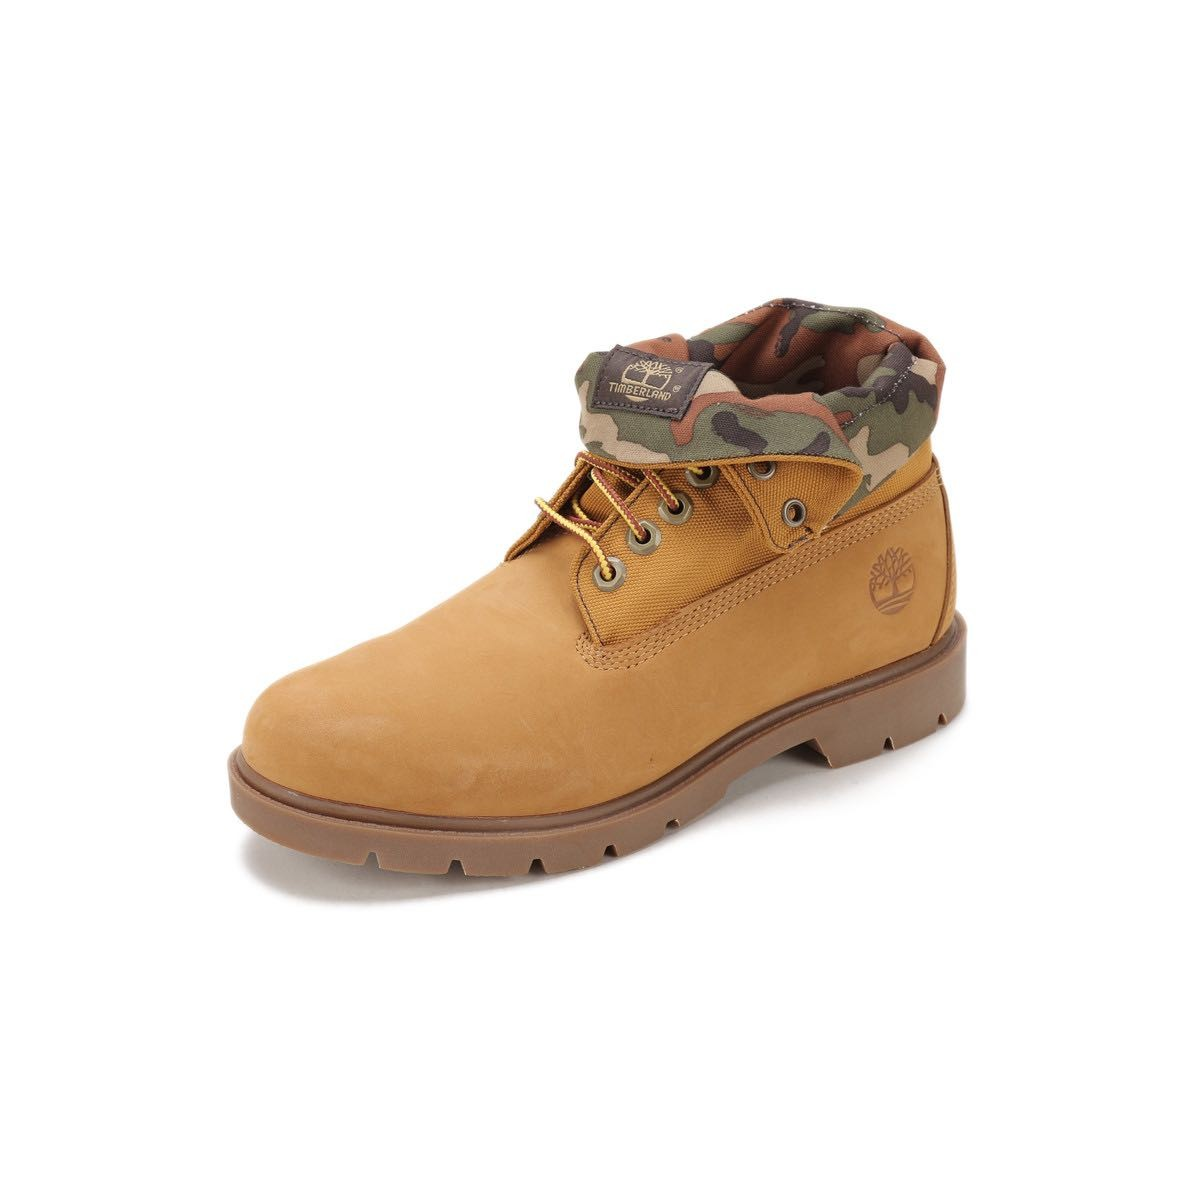 Timberland 添柏嵐 A11FVW 男士工裝短靴